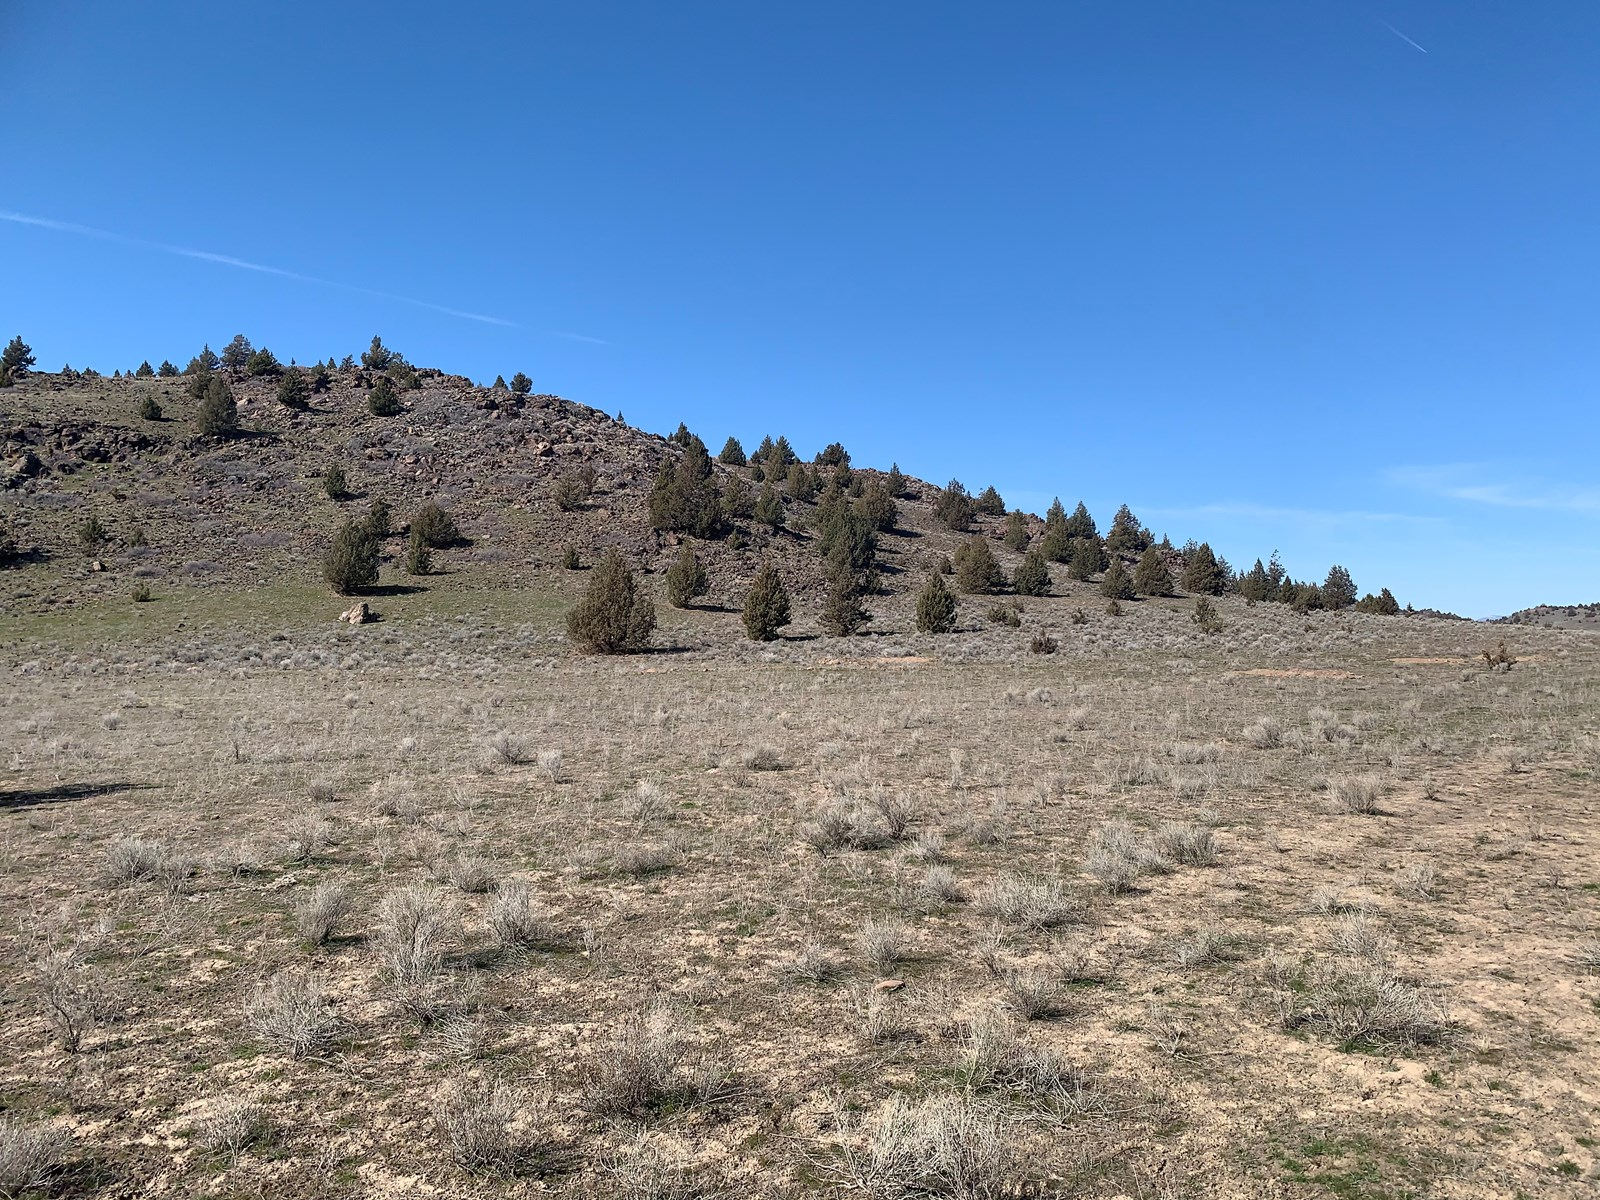 Acreage for Sale in Siskiyou County